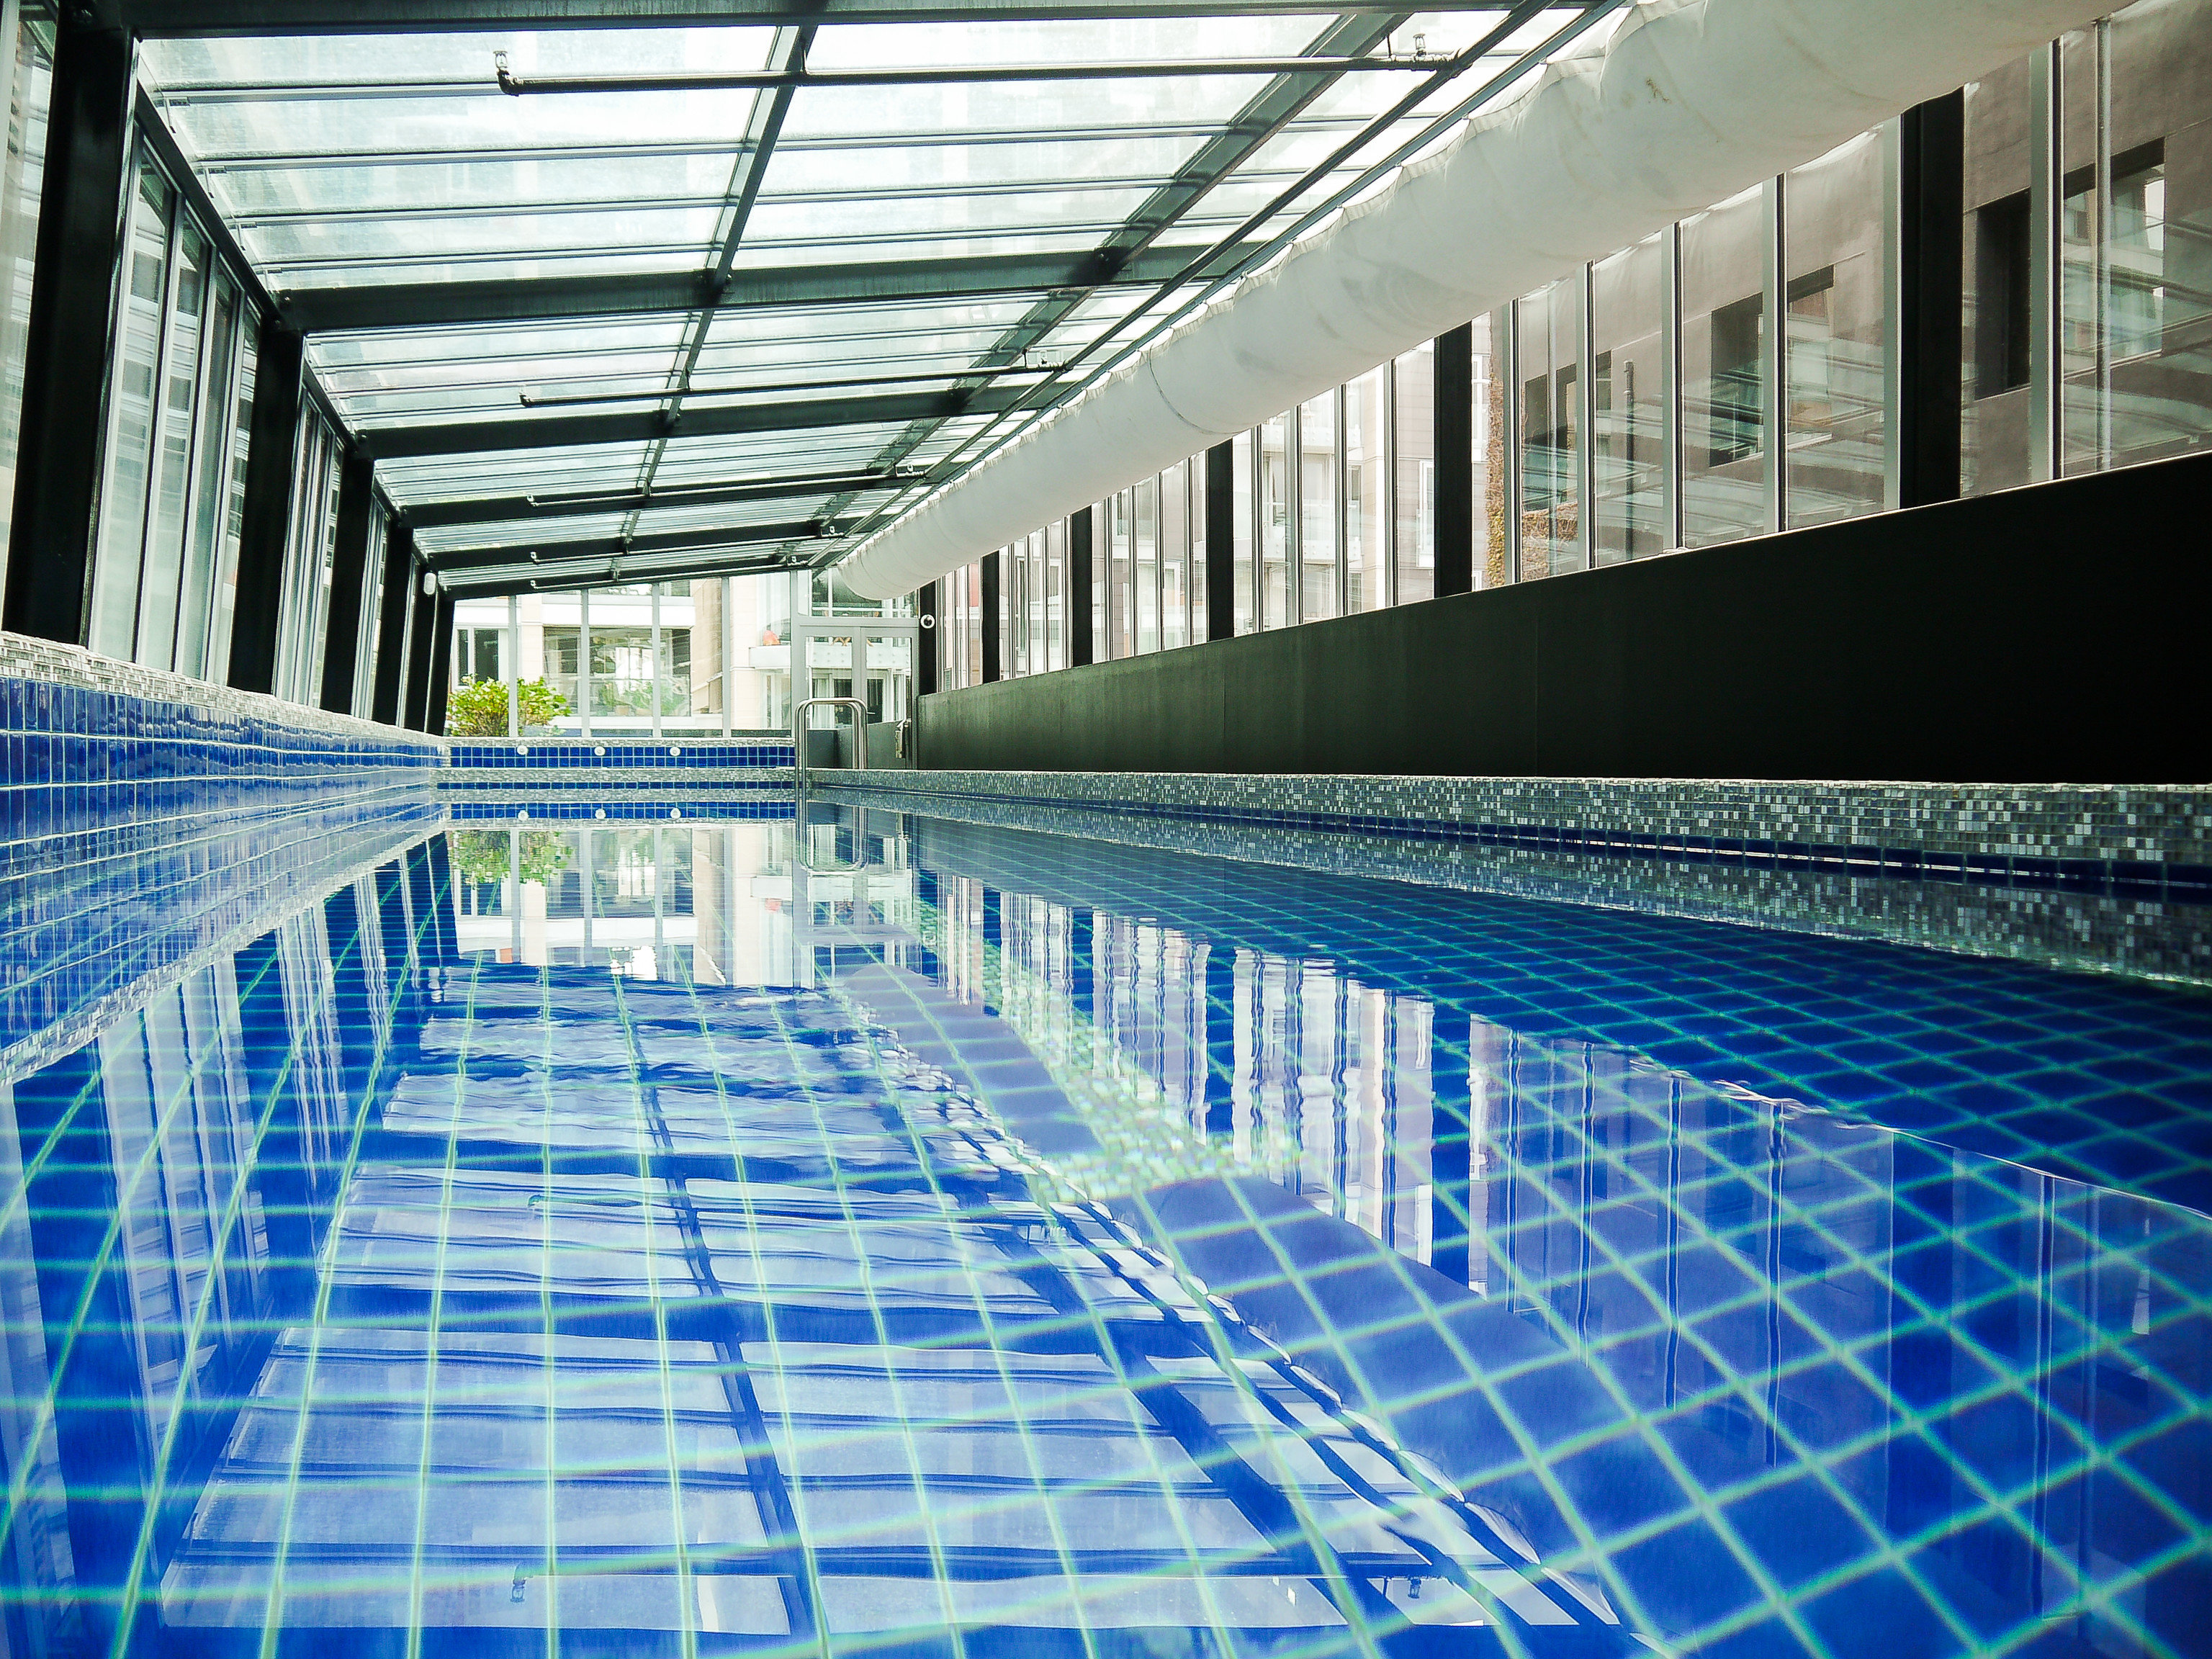 All-Inclusive Resorts Boutique Hotels Hotels Romance leisure centre swimming pool Architecture structure leisure water reflection daylighting line sport venue Pool convention center condominium building symmetry amenity blue walkway